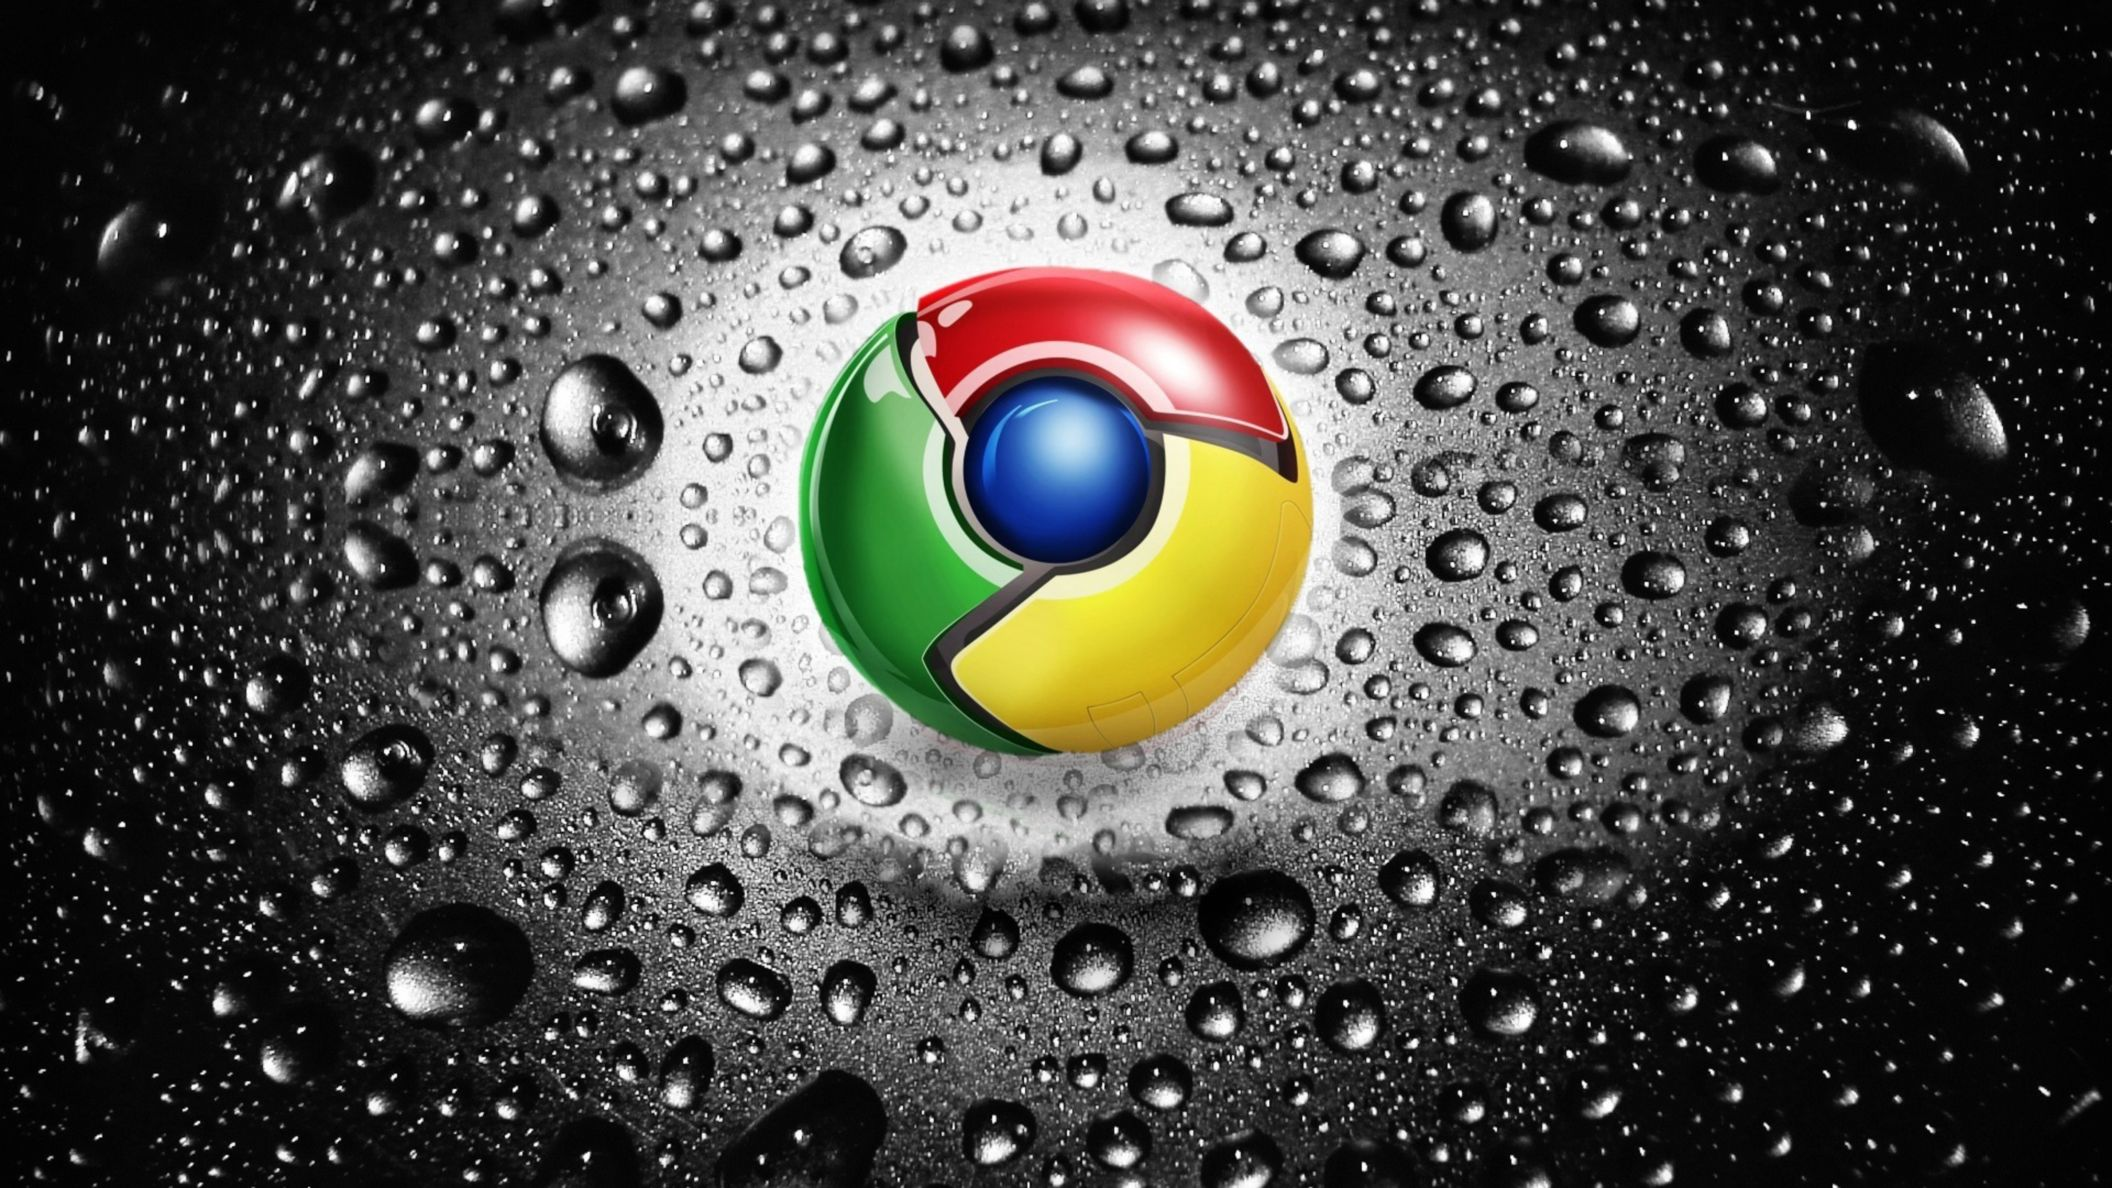 Download free HD Chrome Water Art Wallpaper, image